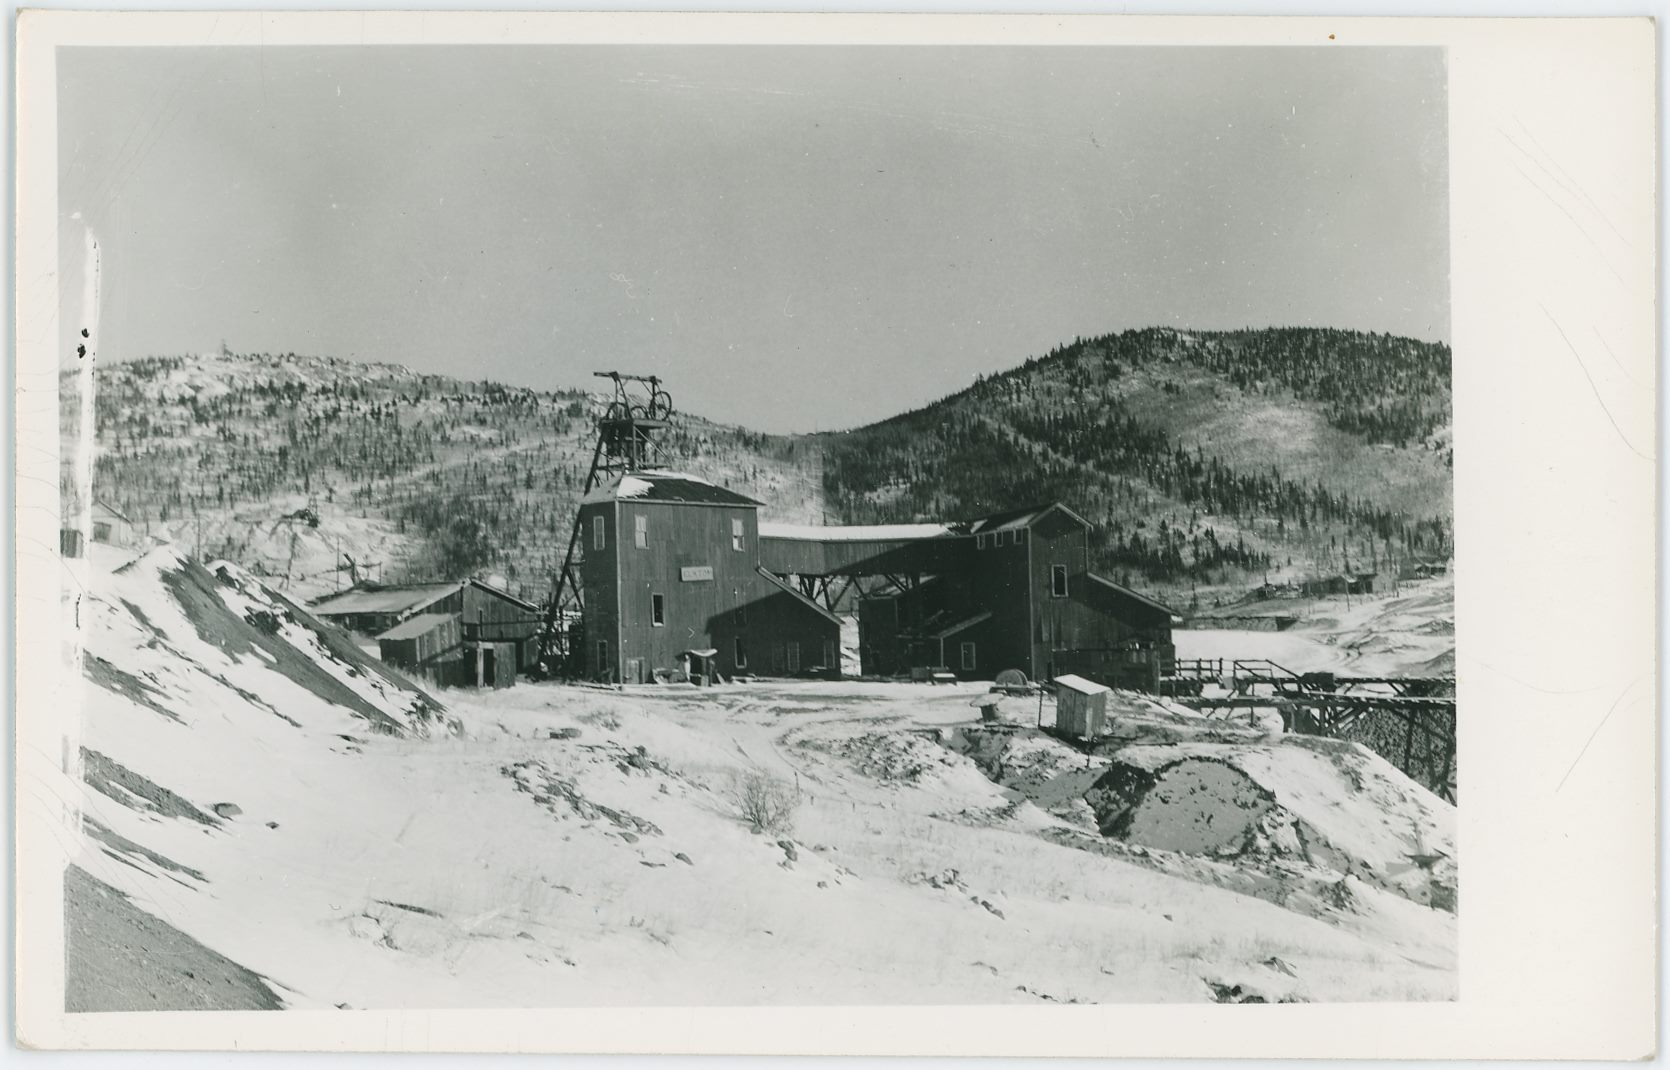 A winter view at the partly exposed Head-Frame part of the Elkton Mine on Raven Hill, looking from the north and west side. Snow covers the ground and in the background is the saddle between Battle Mountain on left and Squaw Mountain on right if I am not mistaken.    * The Carbonate Queen Head-frame and surface structures are seen in the background left, about center top/down and about 1/5 in from left-hand side. Quite some dumps in that area it seems.